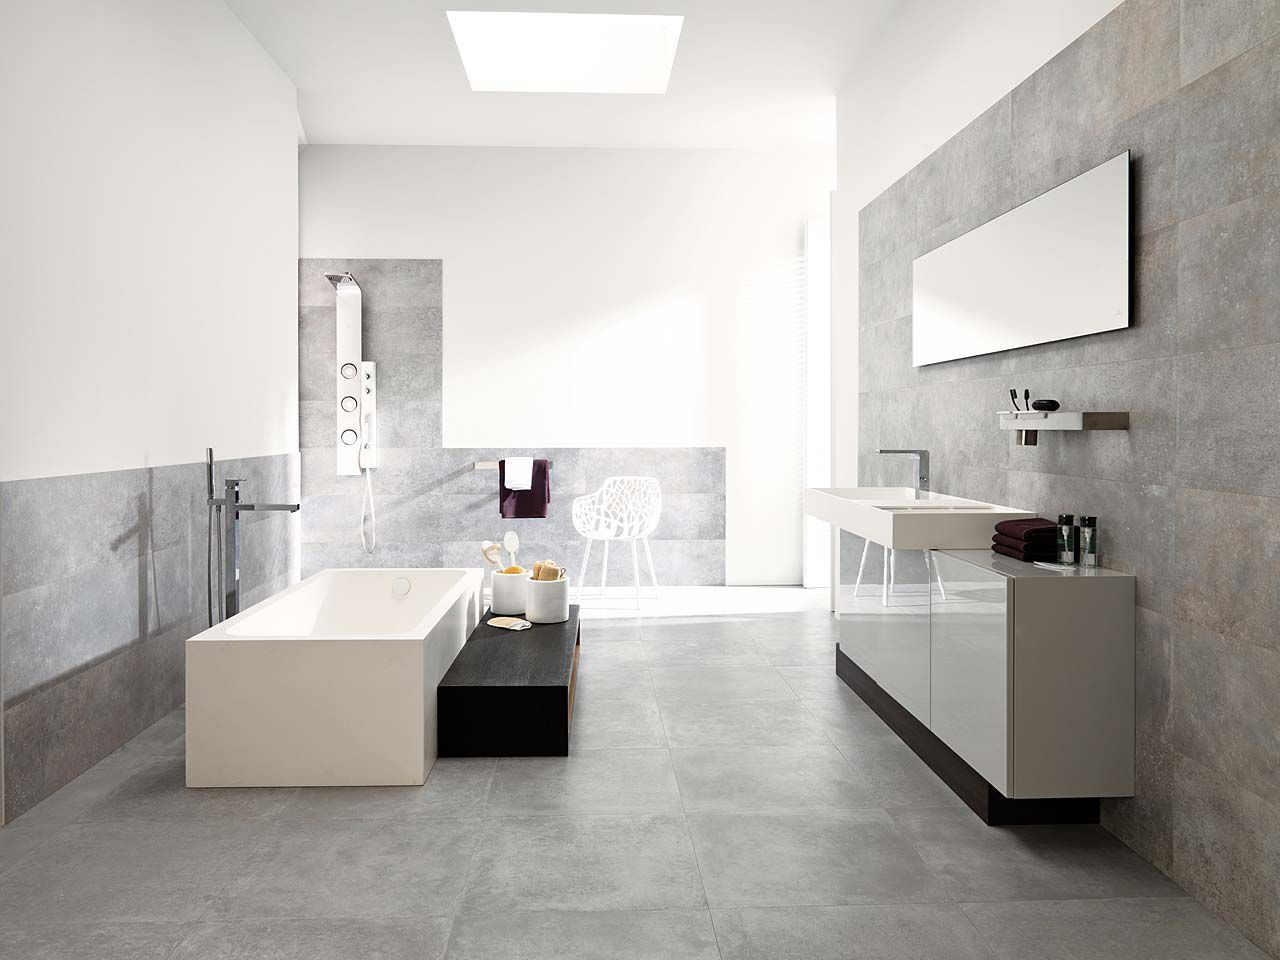 Simple bathroom design ideas you should be using right now for Porcelanosa bathroom designs